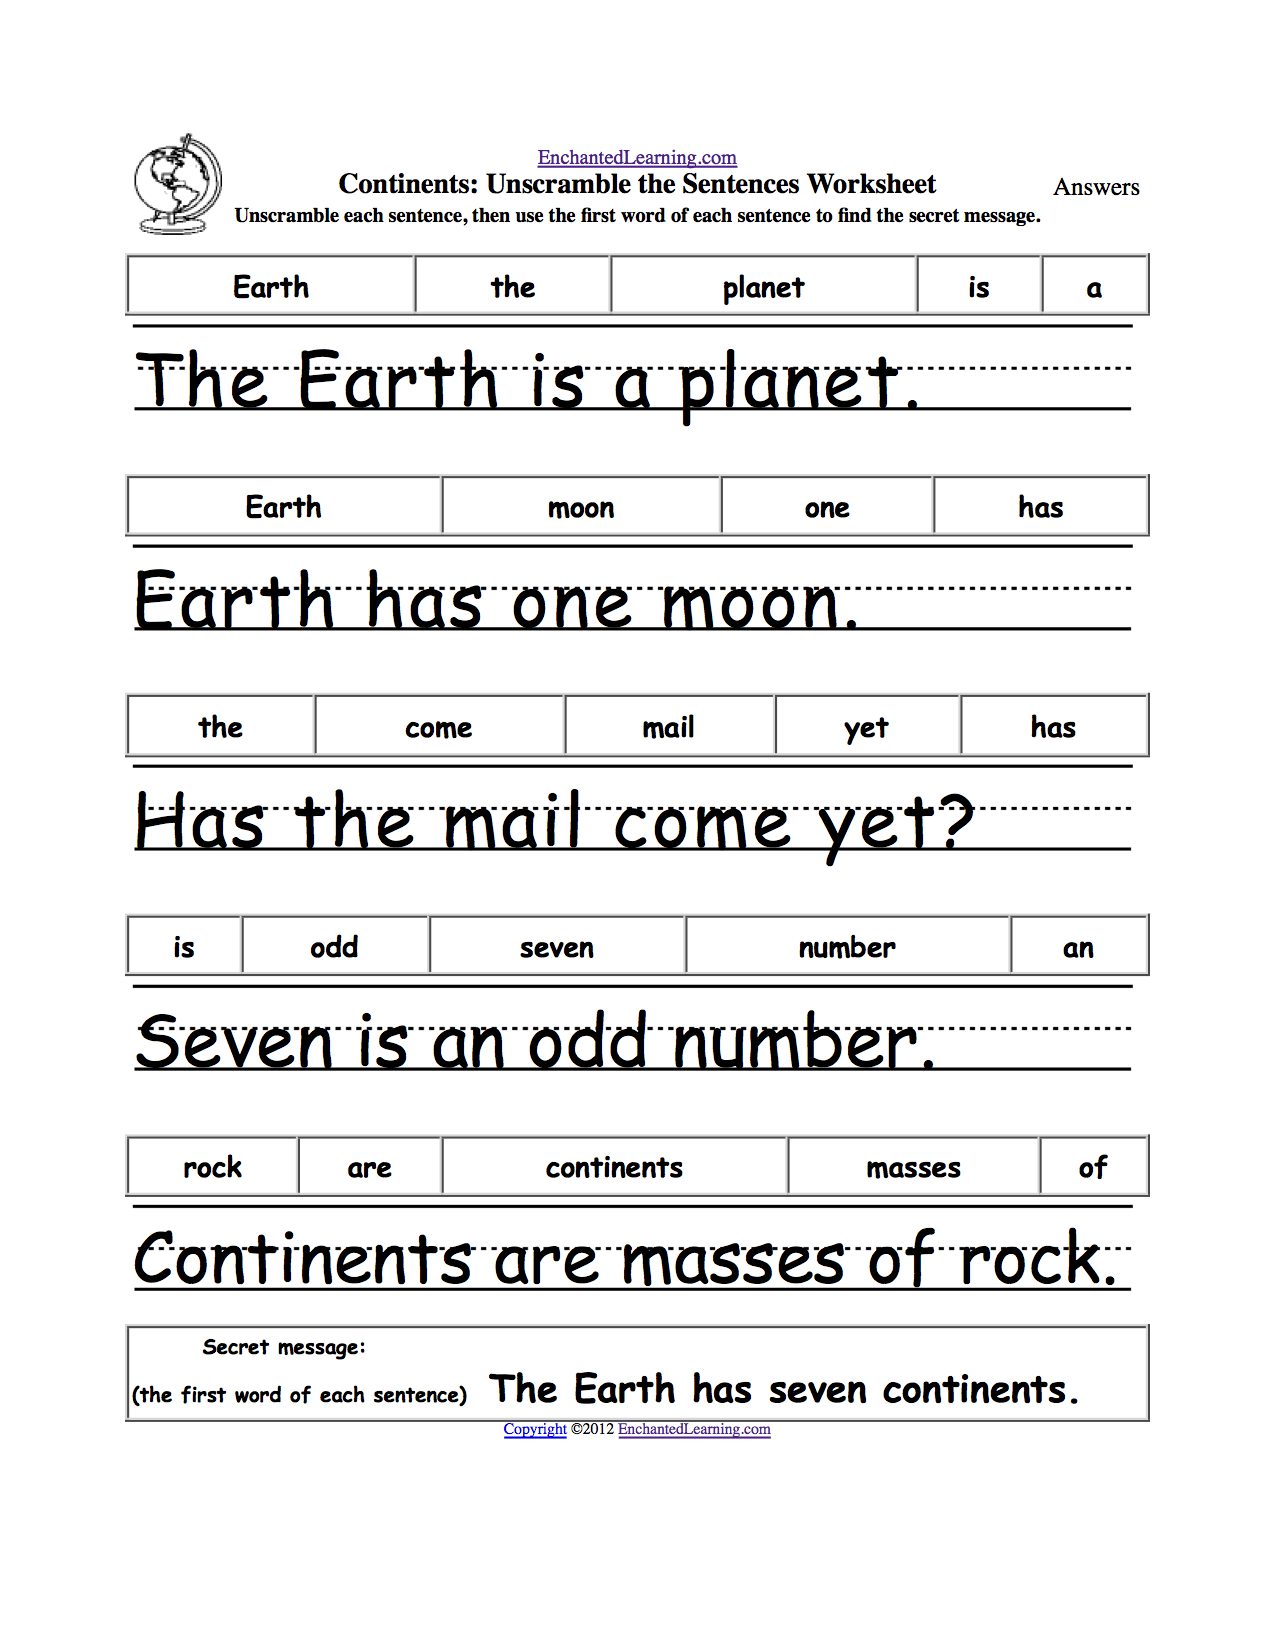 Worksheets Easy Grammar Worksheets grammar enchantedlearning com unscramble the sentences worksheet